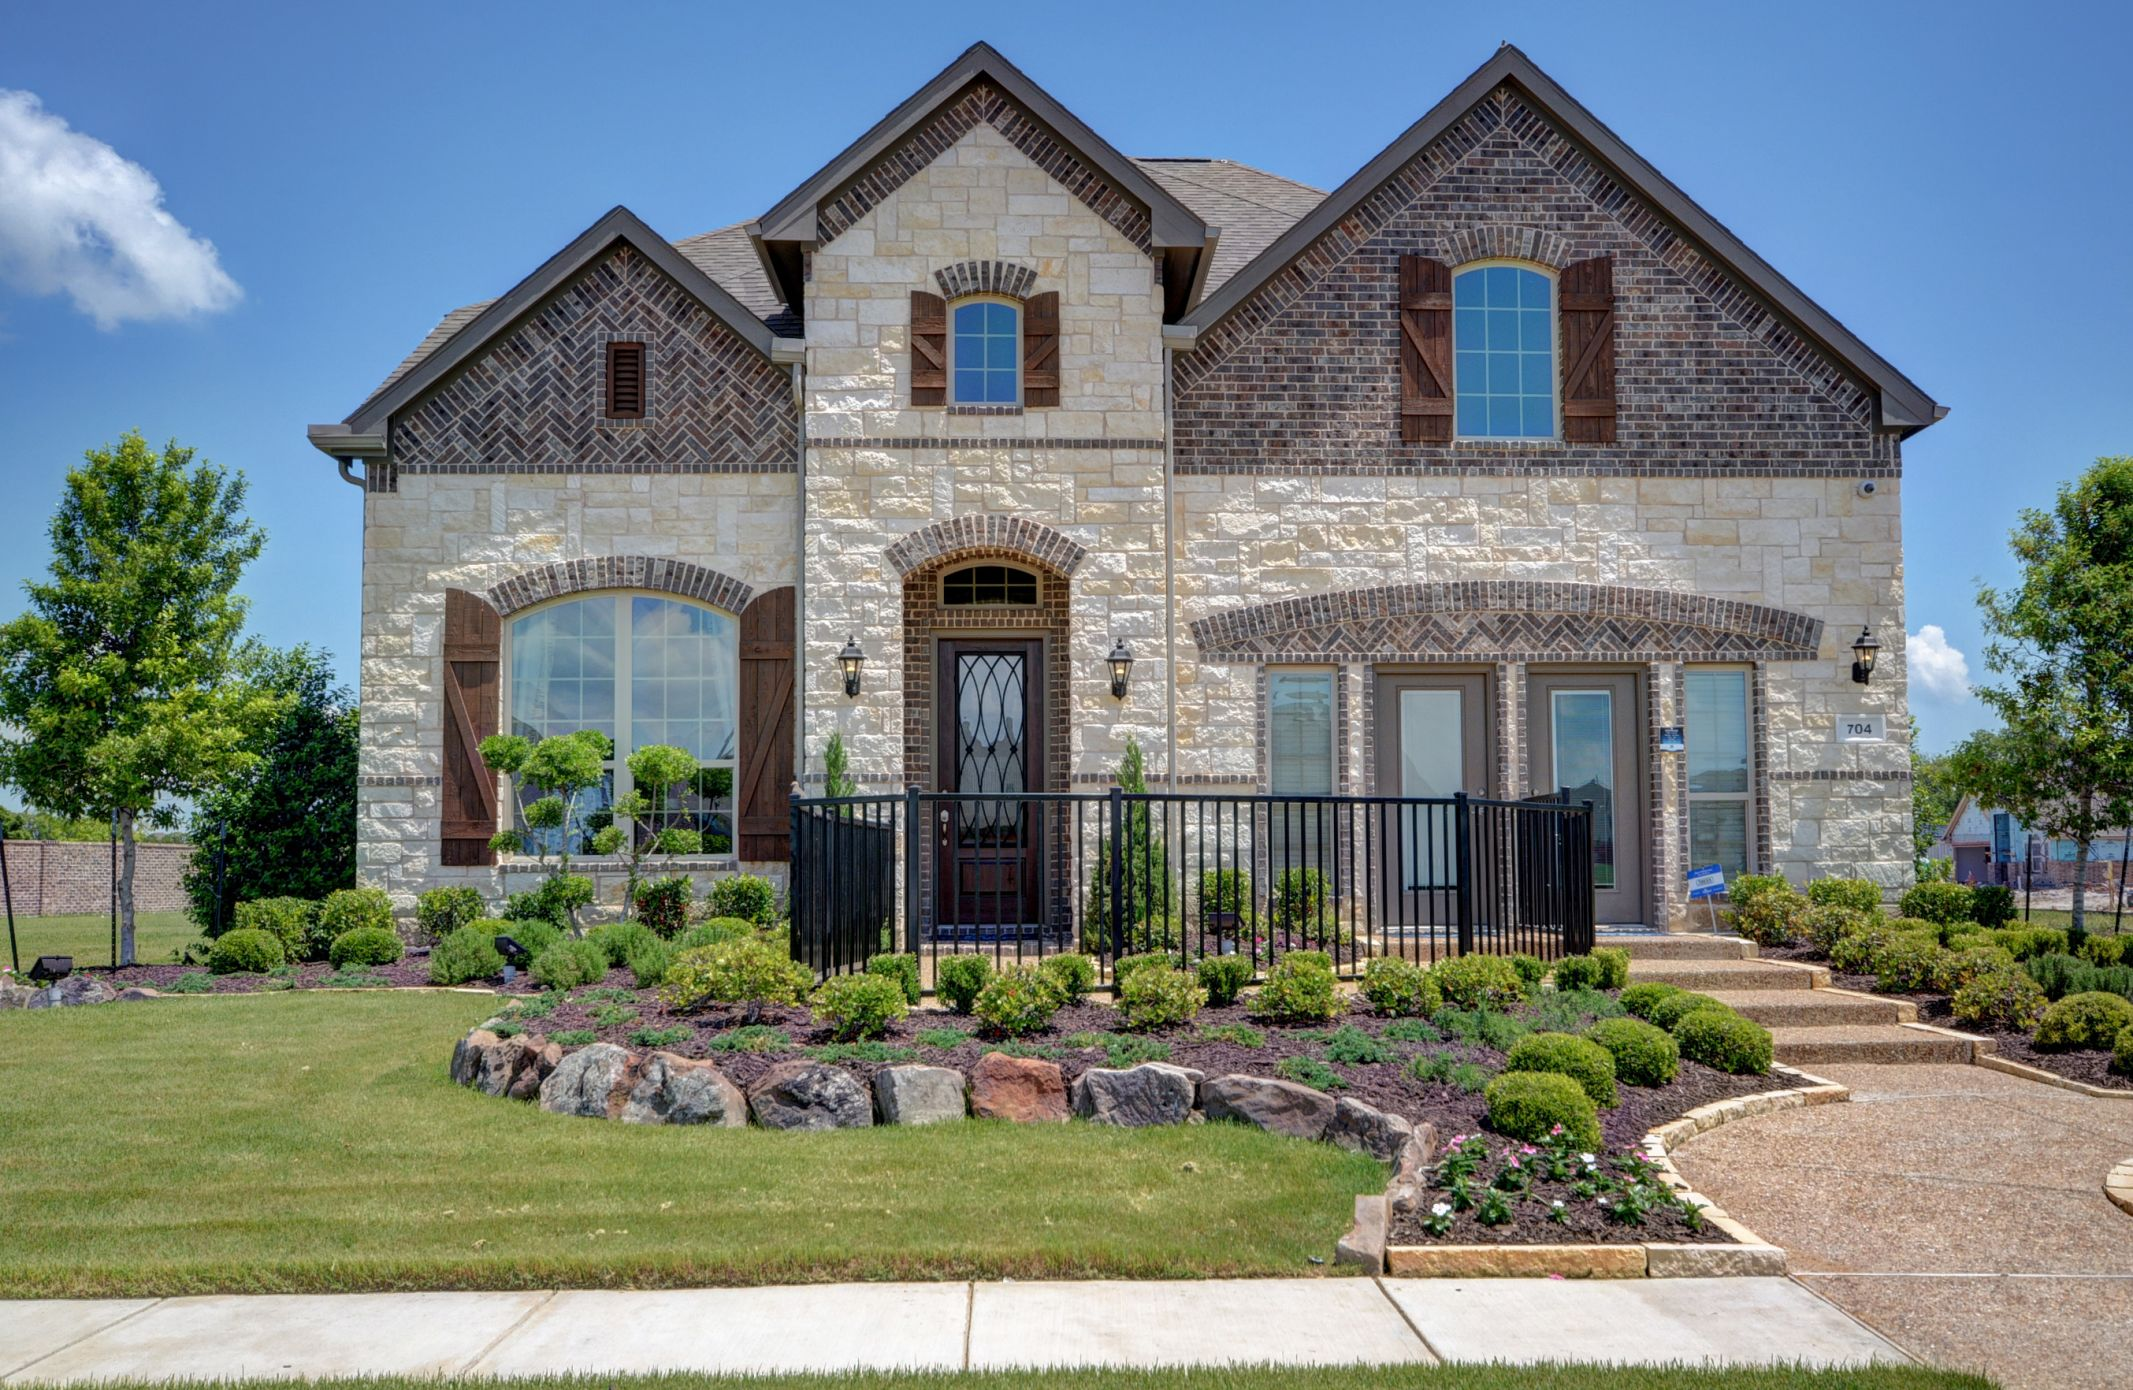 Hudson Heights - Single Family Homes. Plano, TX, United ... on lennar homes plymouth mn, mainvue homes plano tx, lennar homes wesley chapel fl, lennar homes raleigh nc, lennar homes henderson nv, lennar homes roseville ca,